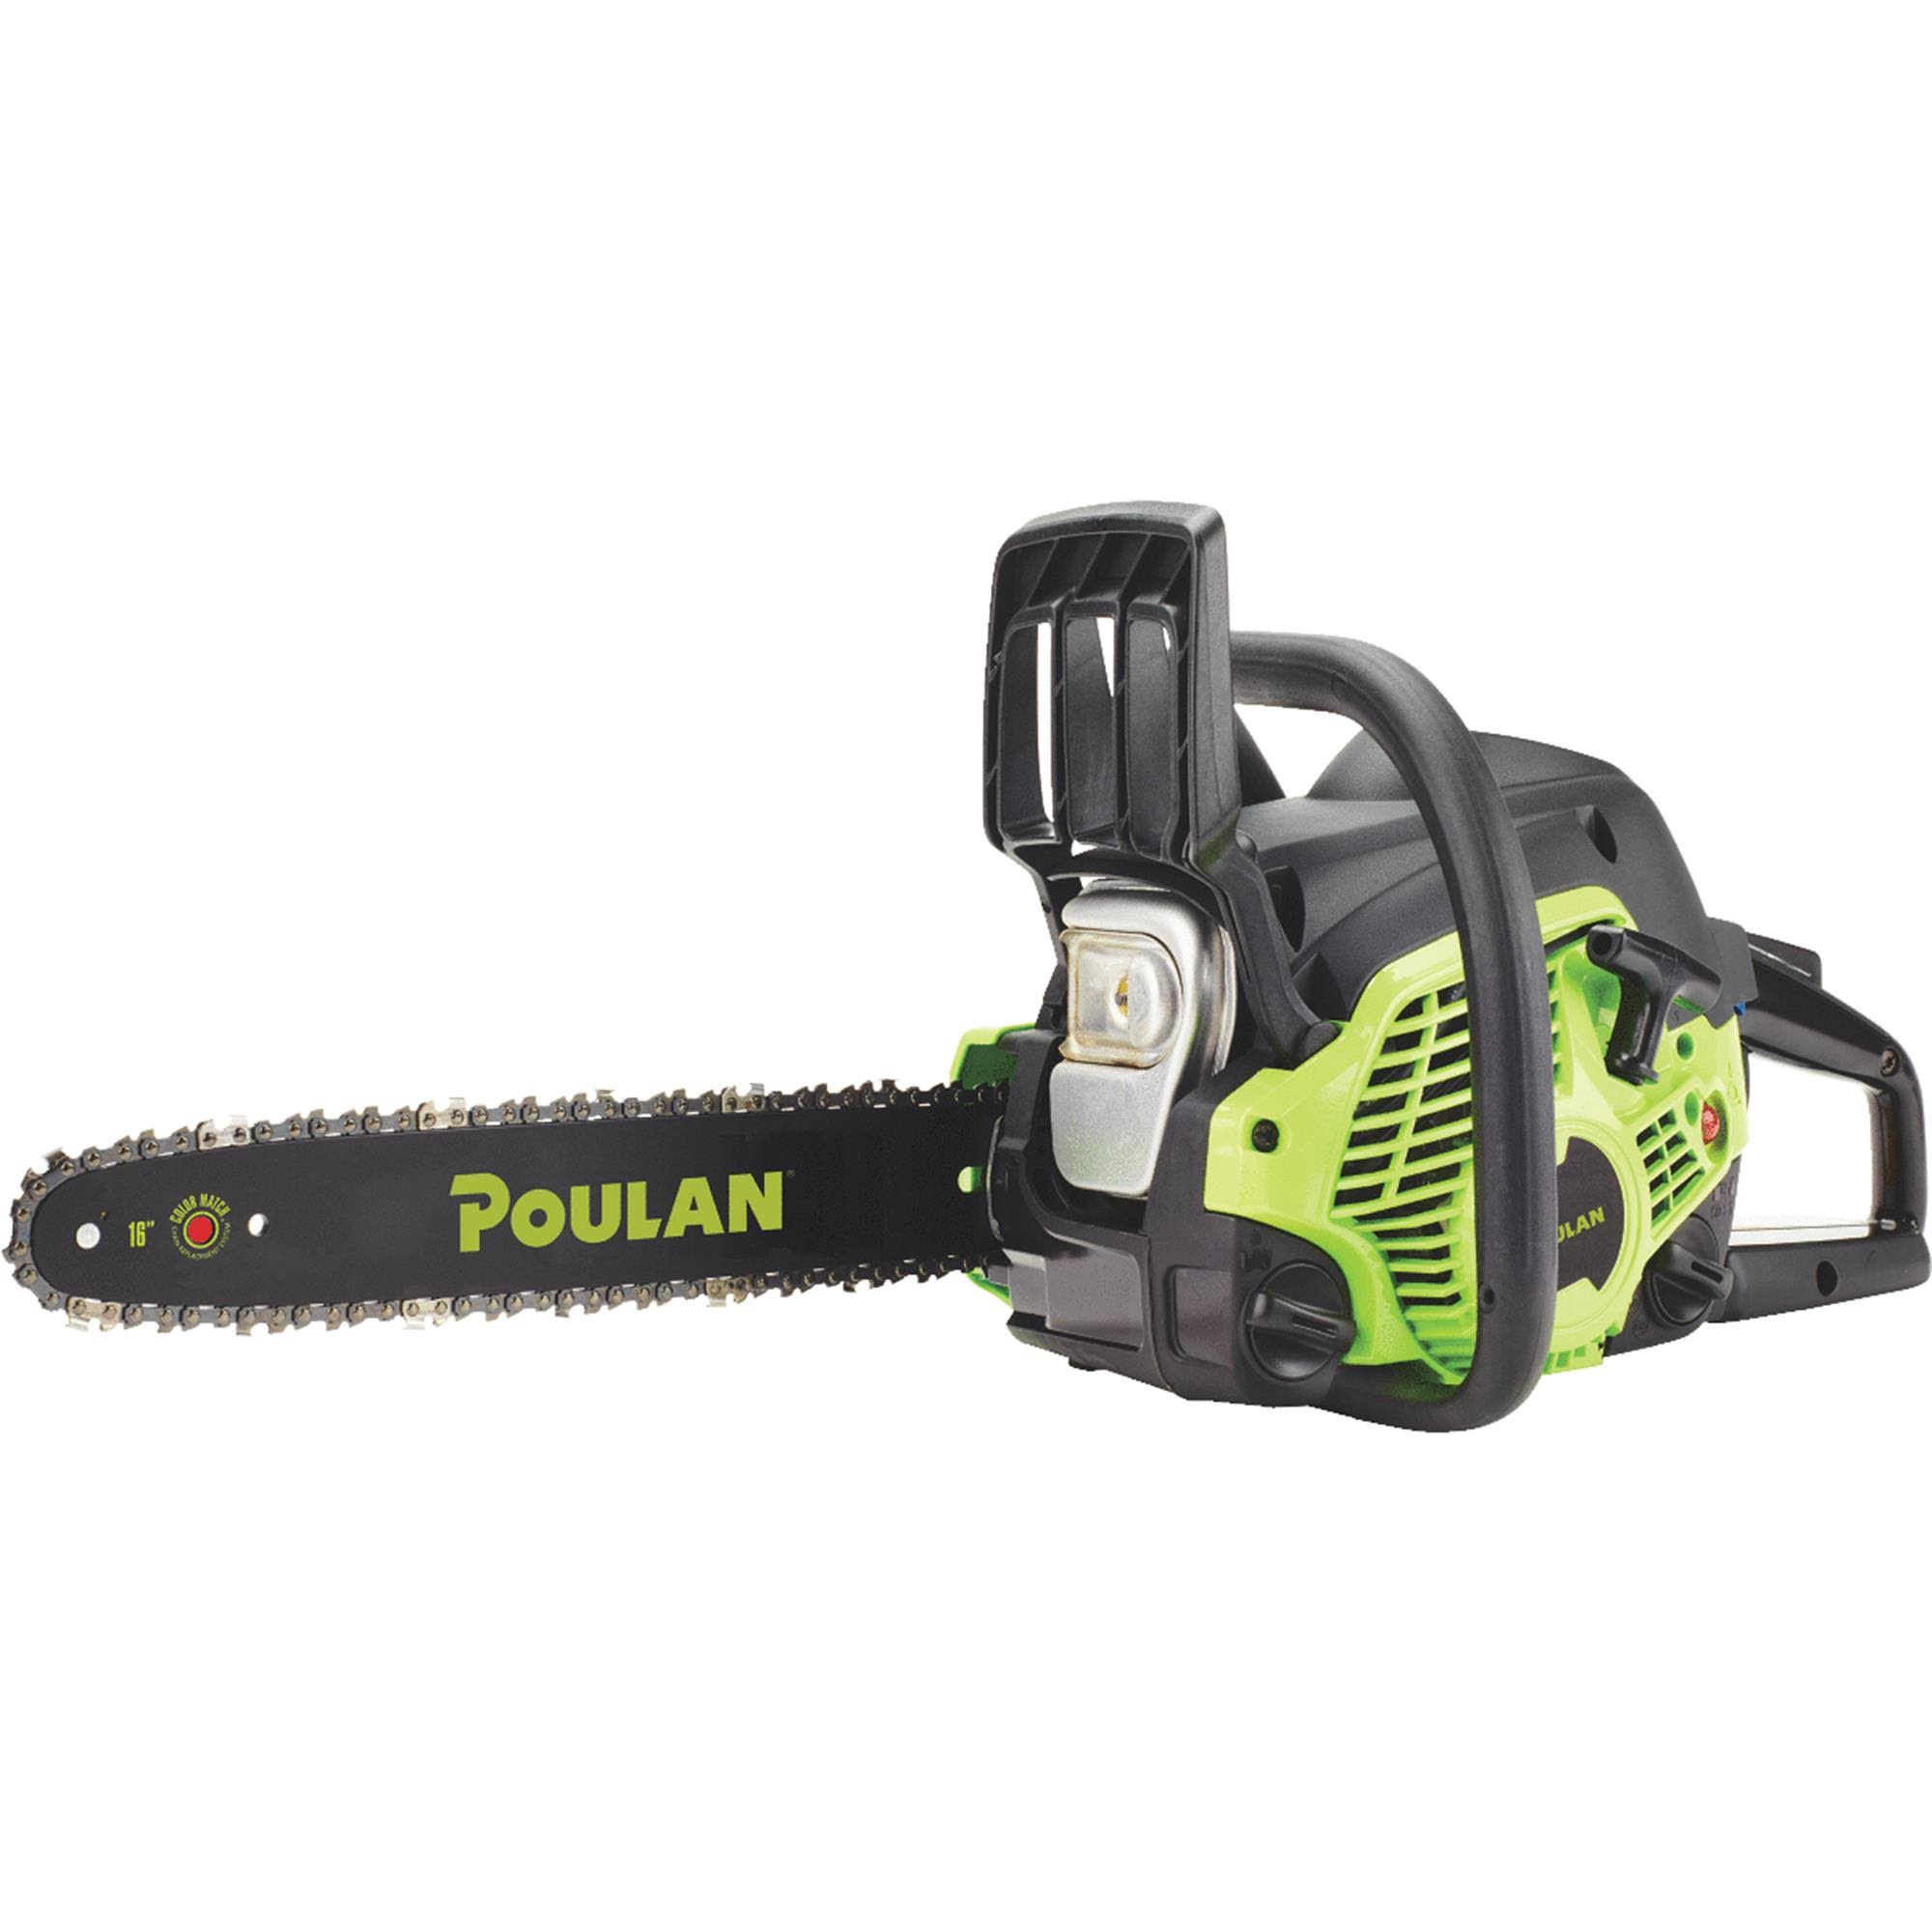 Poulan Pro 2 Stroke Poulan Gas Powered Chainsaw - 38cc, 16""